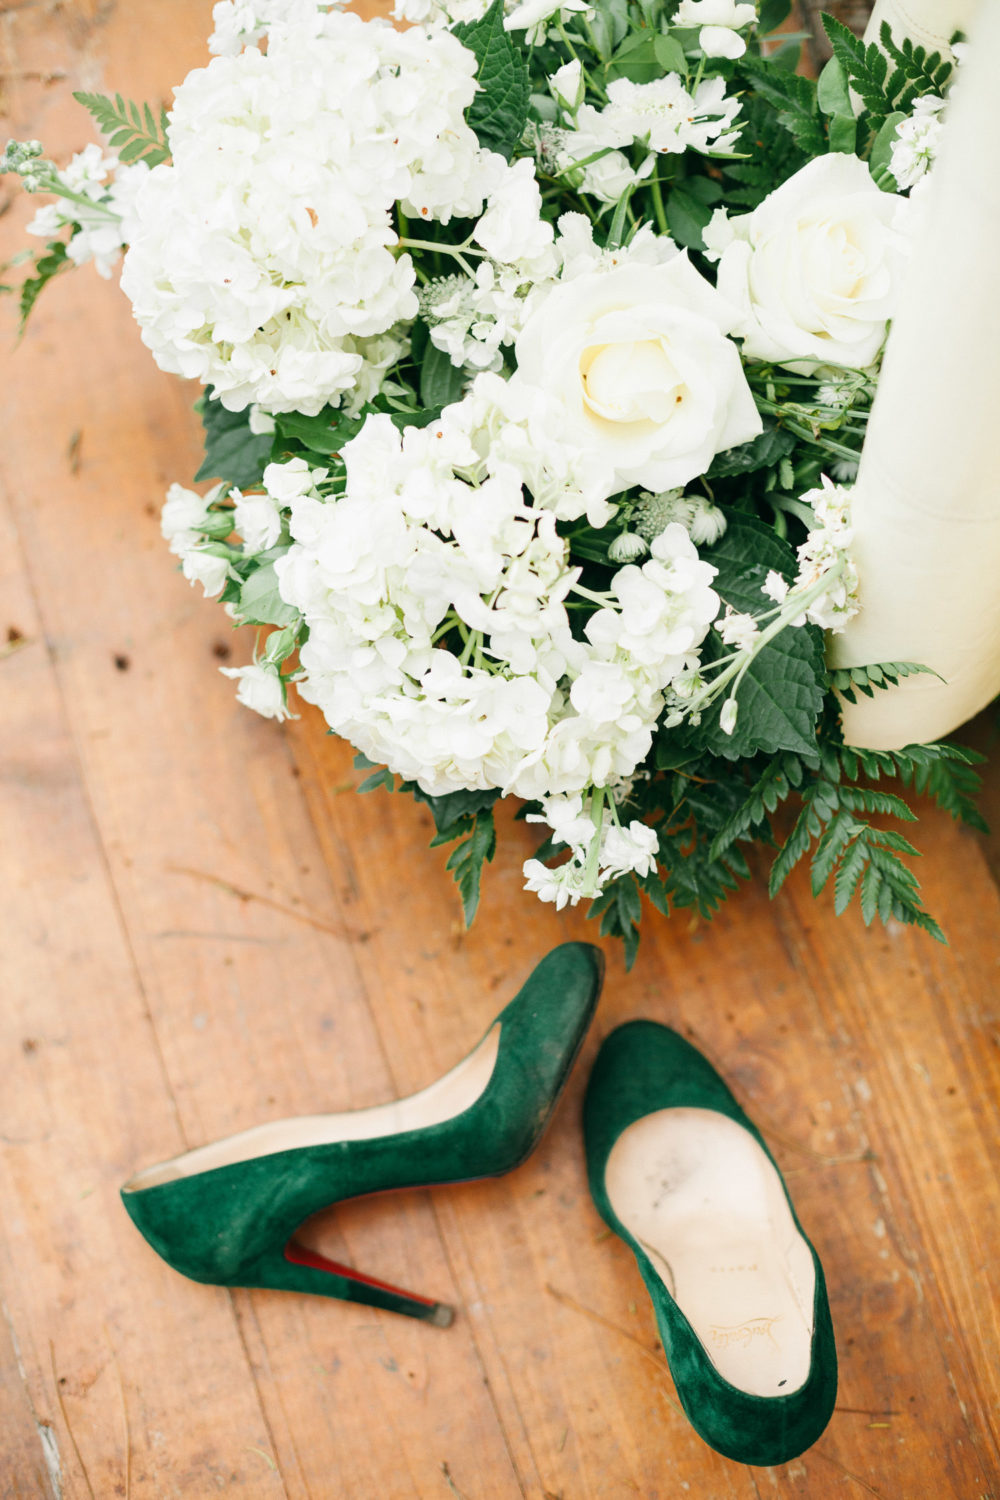 louboutin green heels with white wedding flowers